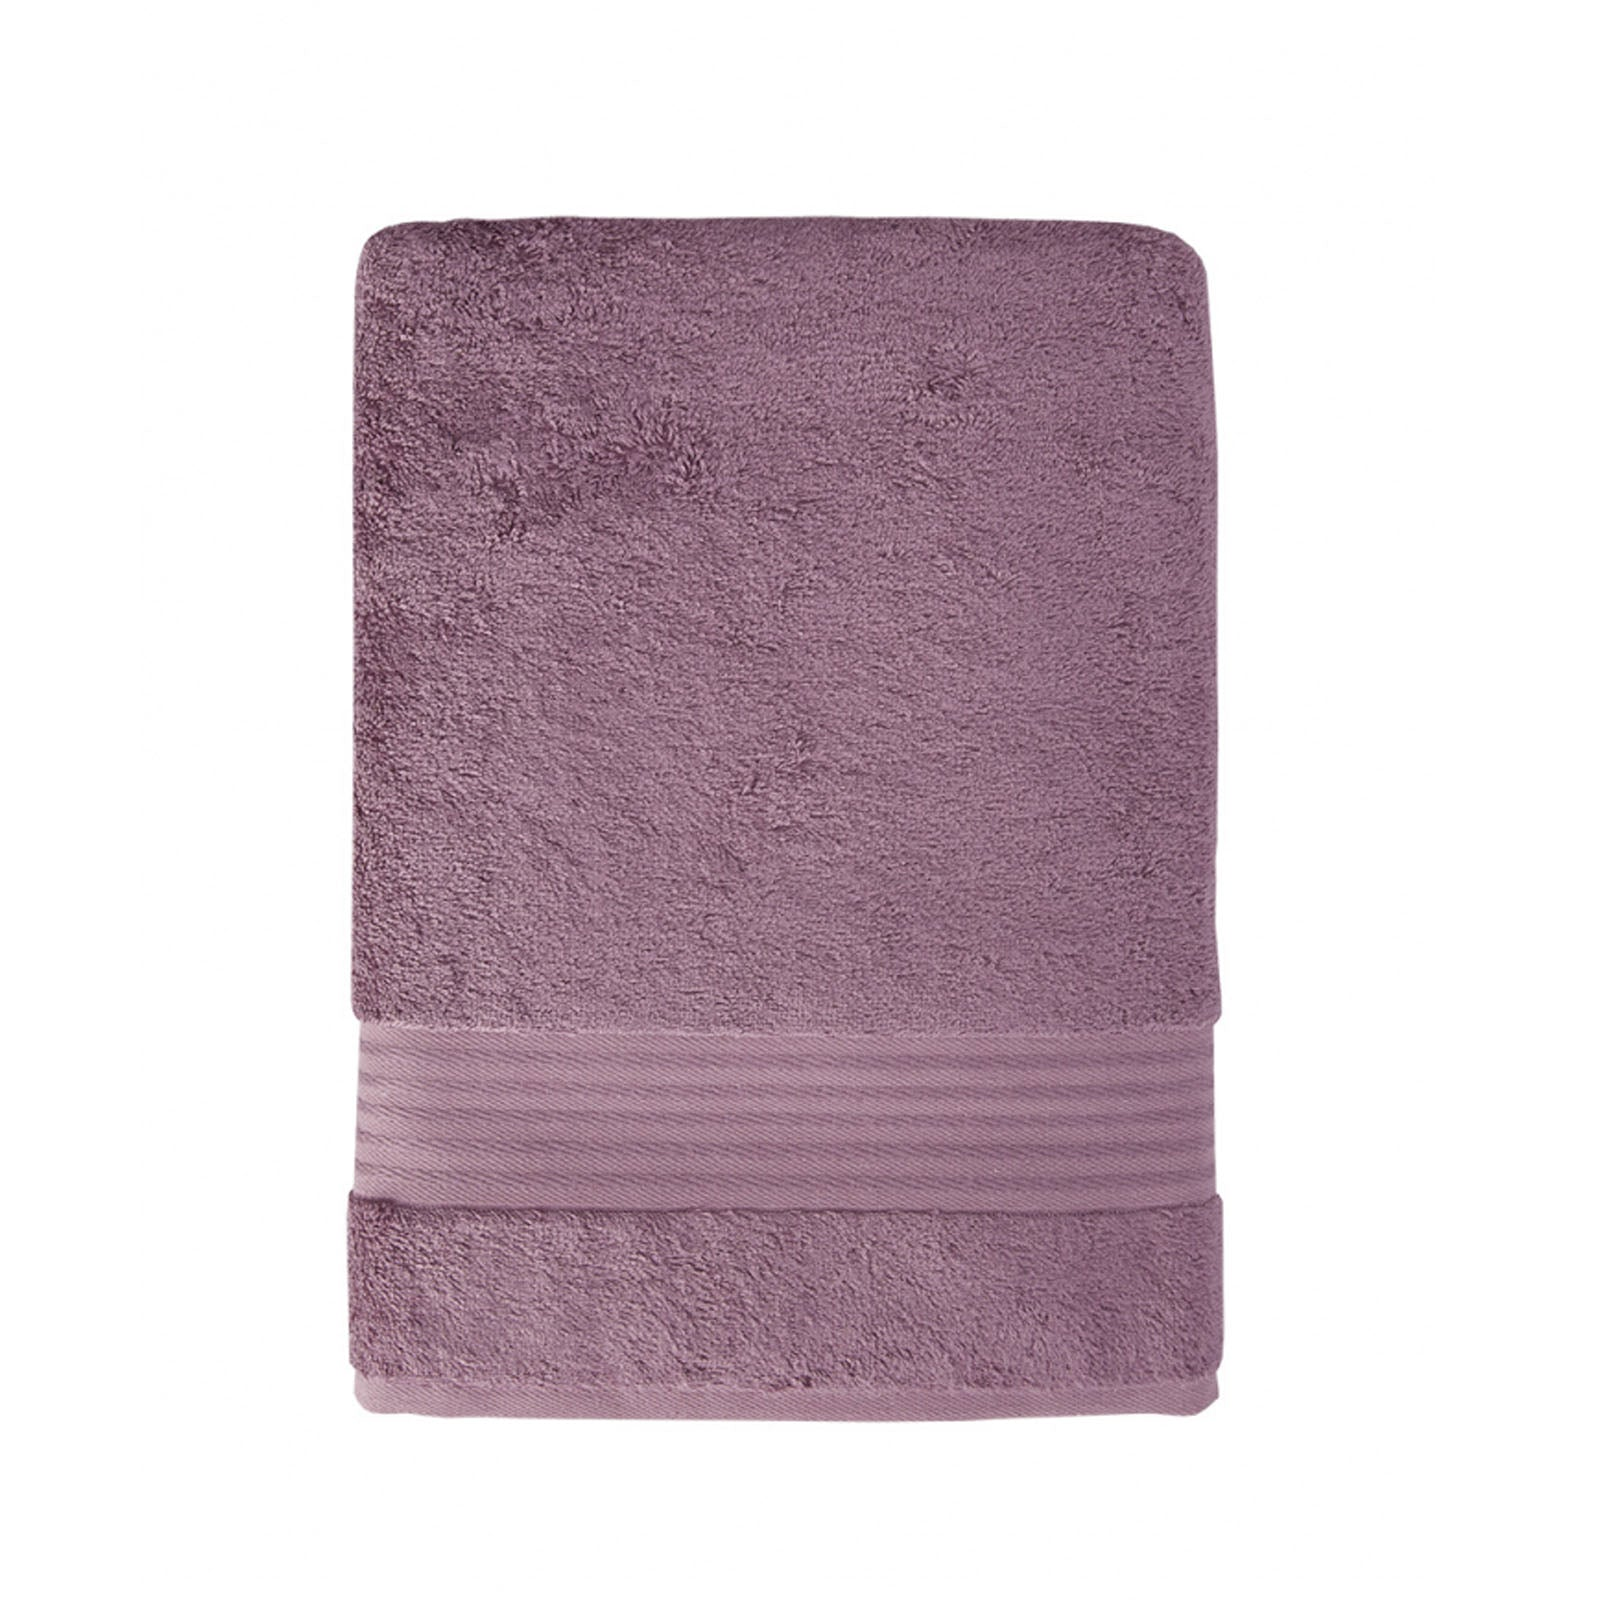 85X150 PURE SOFT towel  200.05.01.0273 - ebarza